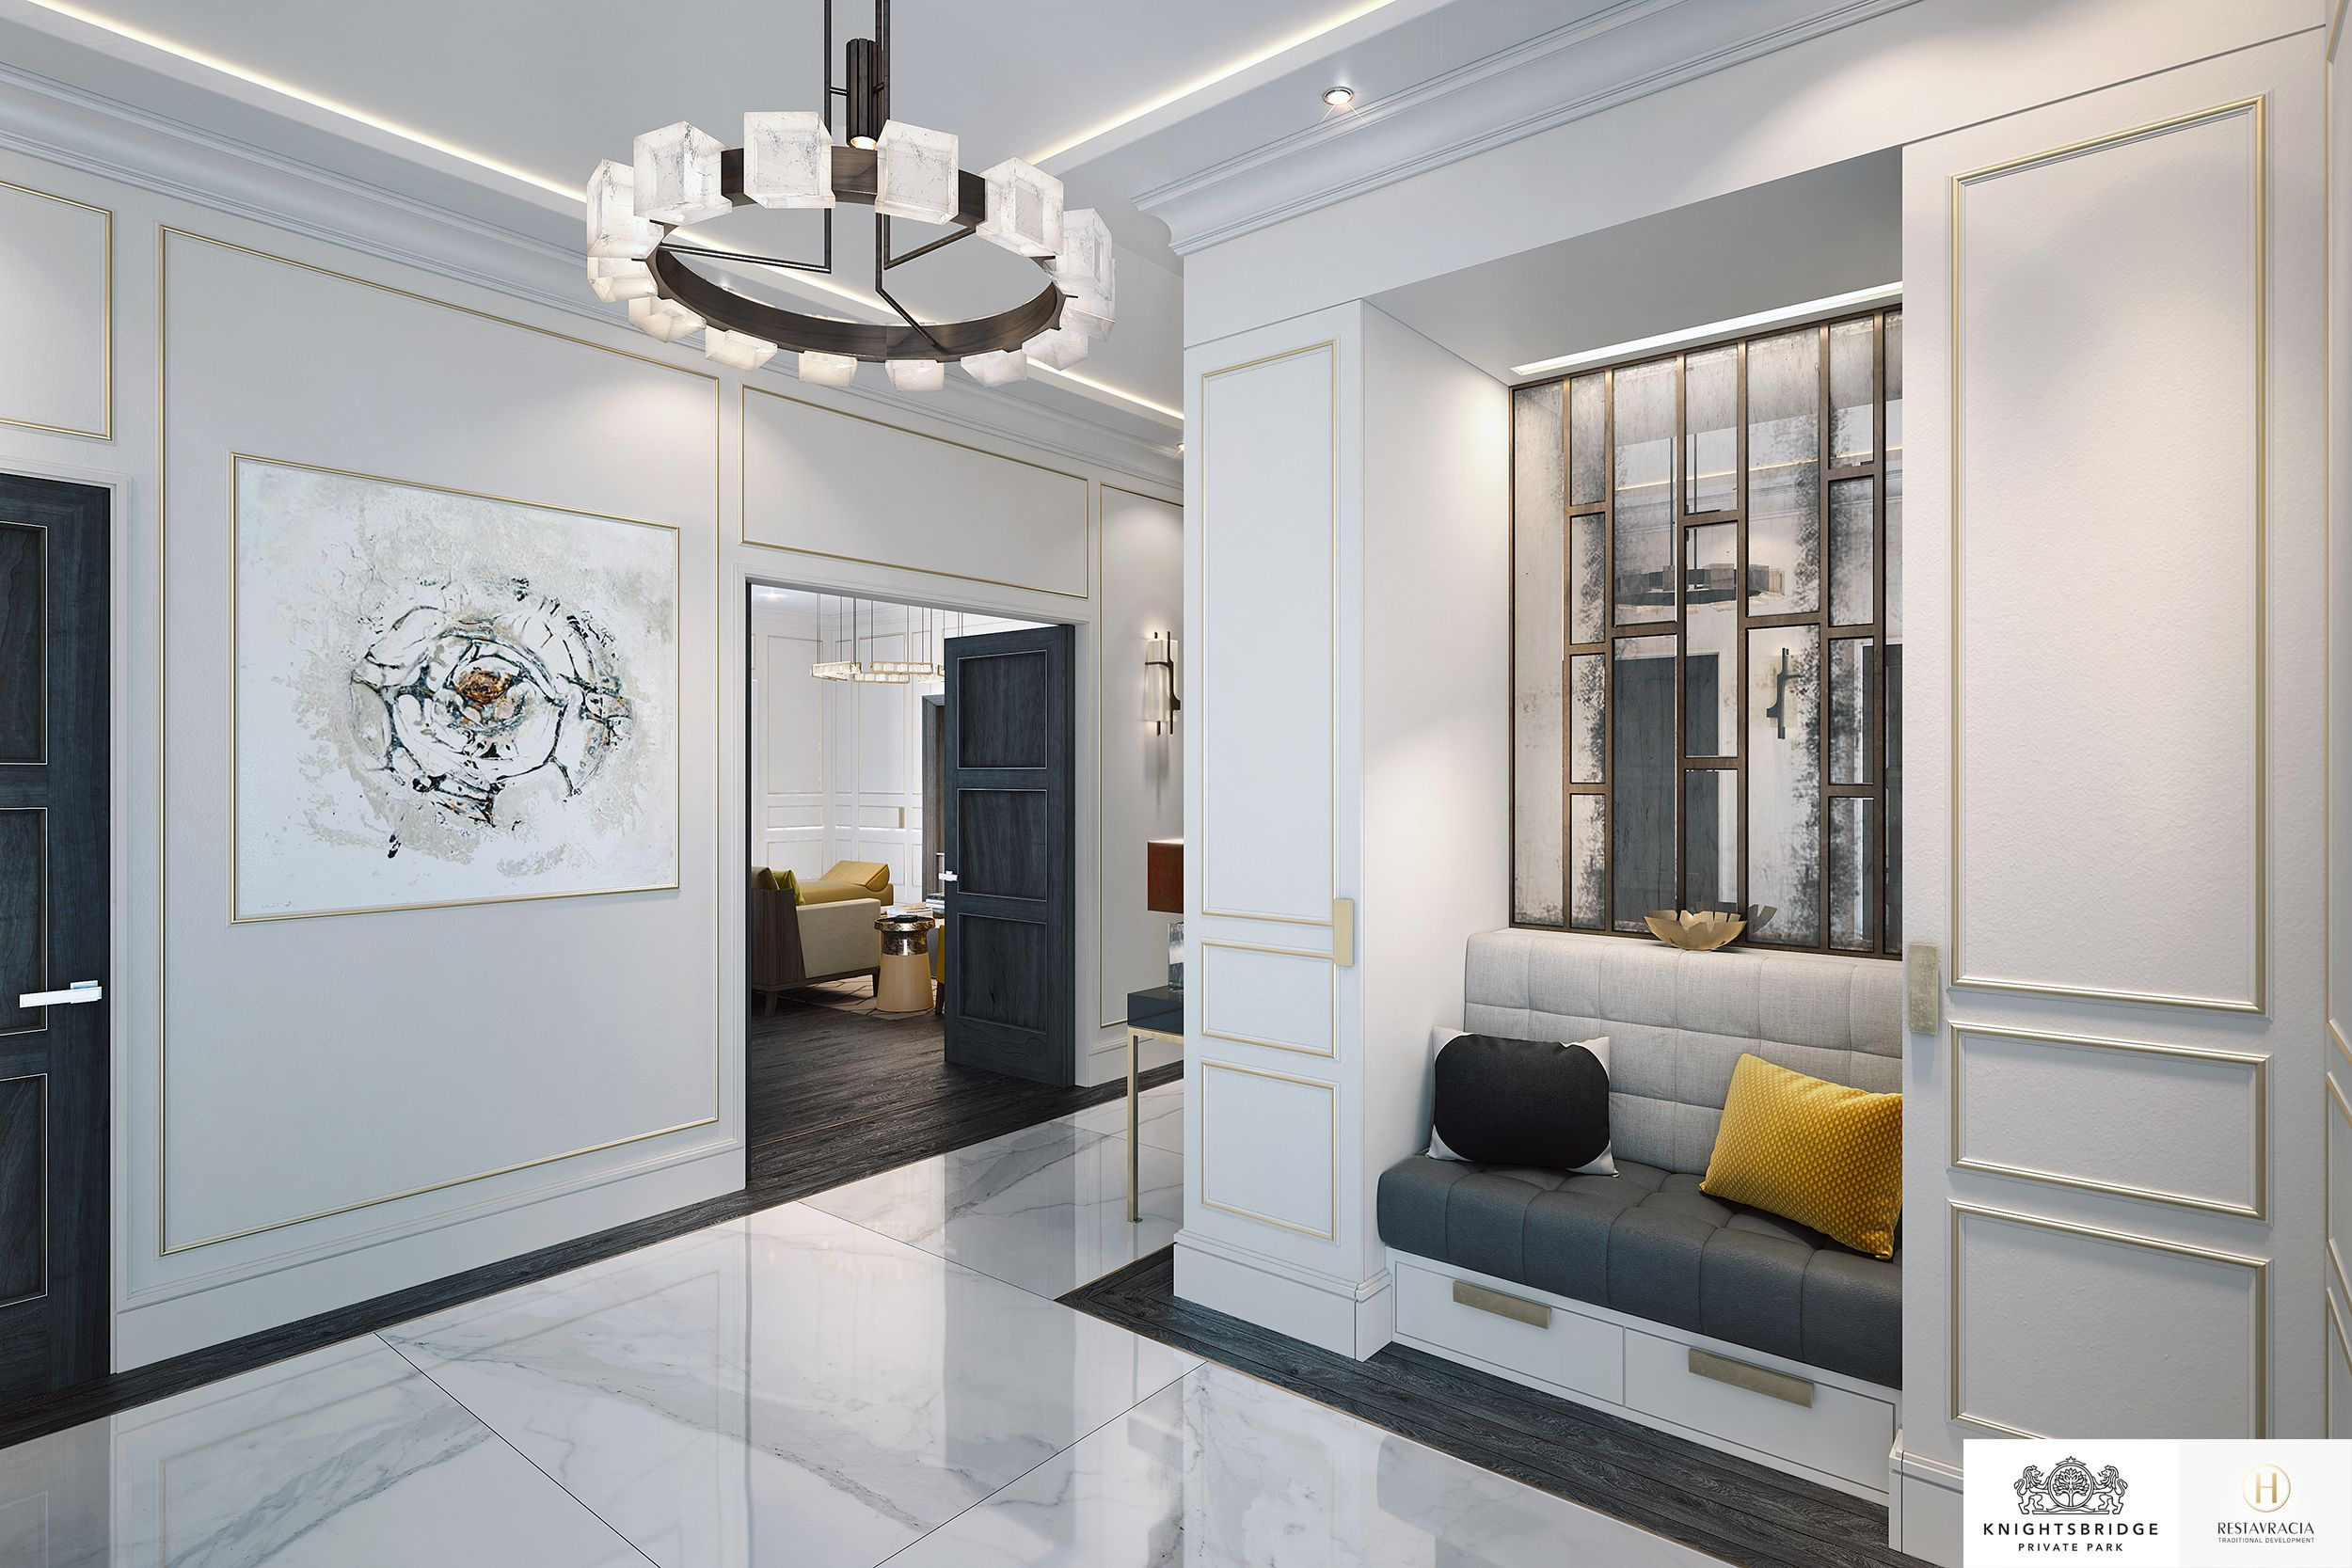 Interiors corridors. Search for the perfect option 21